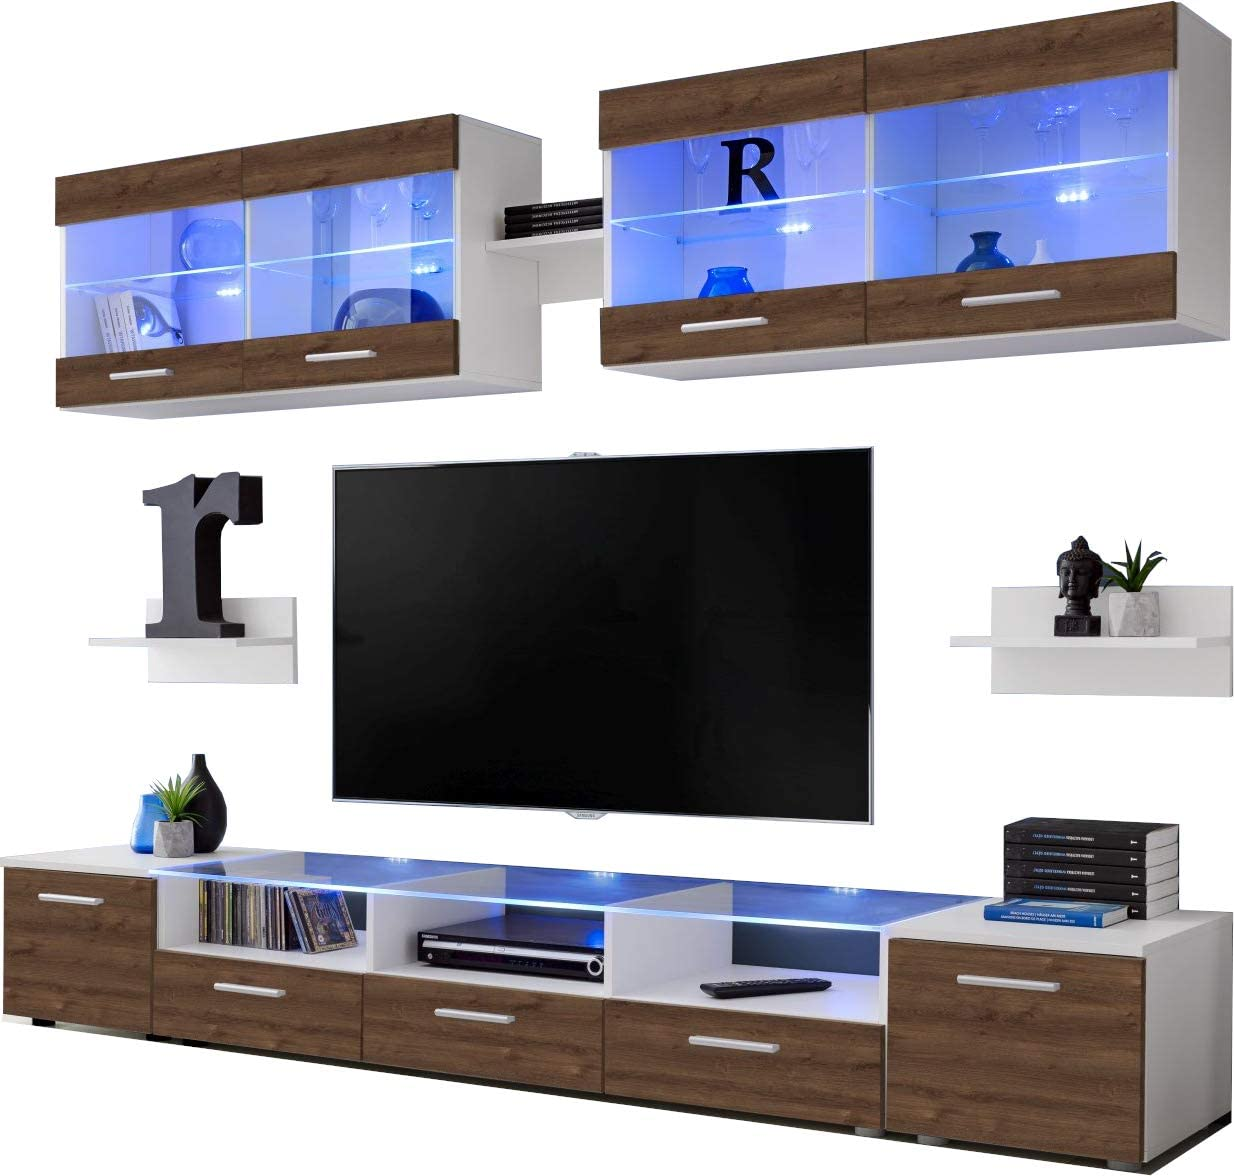 Carcass in White Matt//Front in Black High Gloss Multicolour LEDs with Remote ExtremeFurniture Flash TV Set